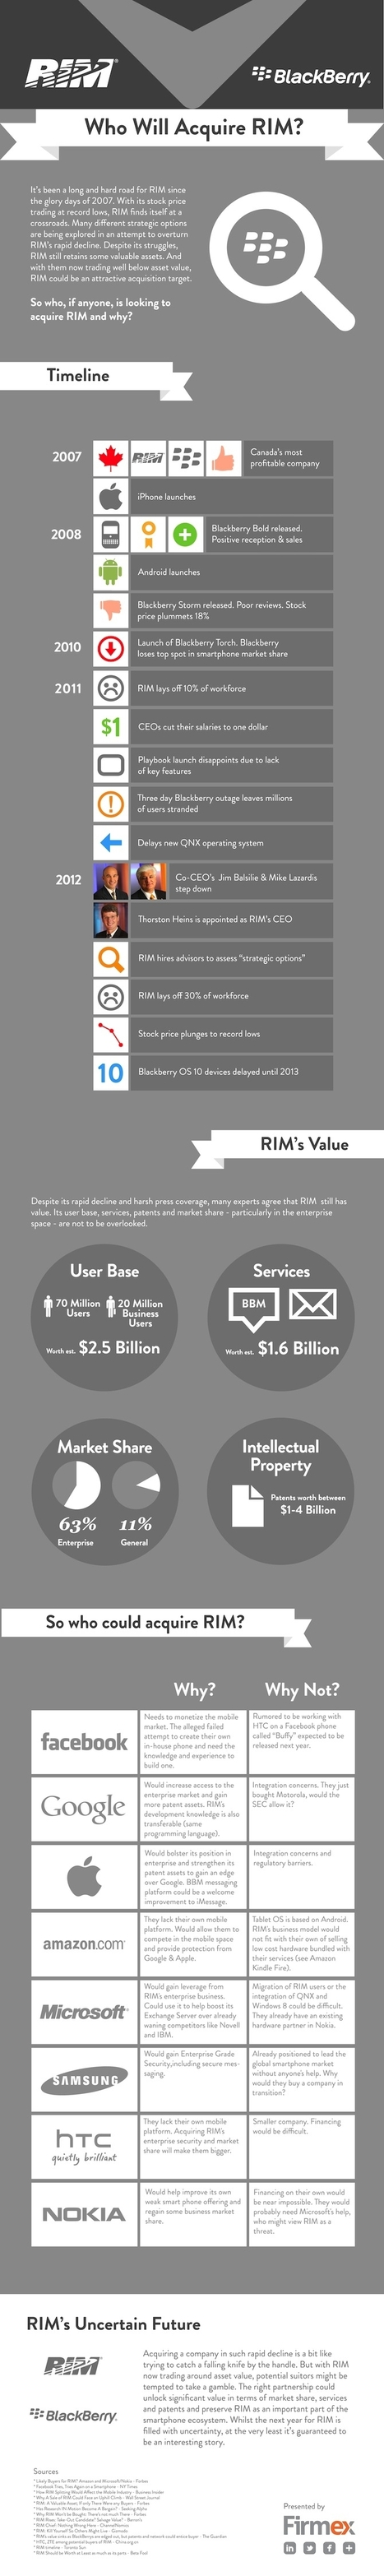 INFOGRAPHIC: Who Will Acquire RIM? | CloudTweaks.com | Cloud Central | Scoop.it